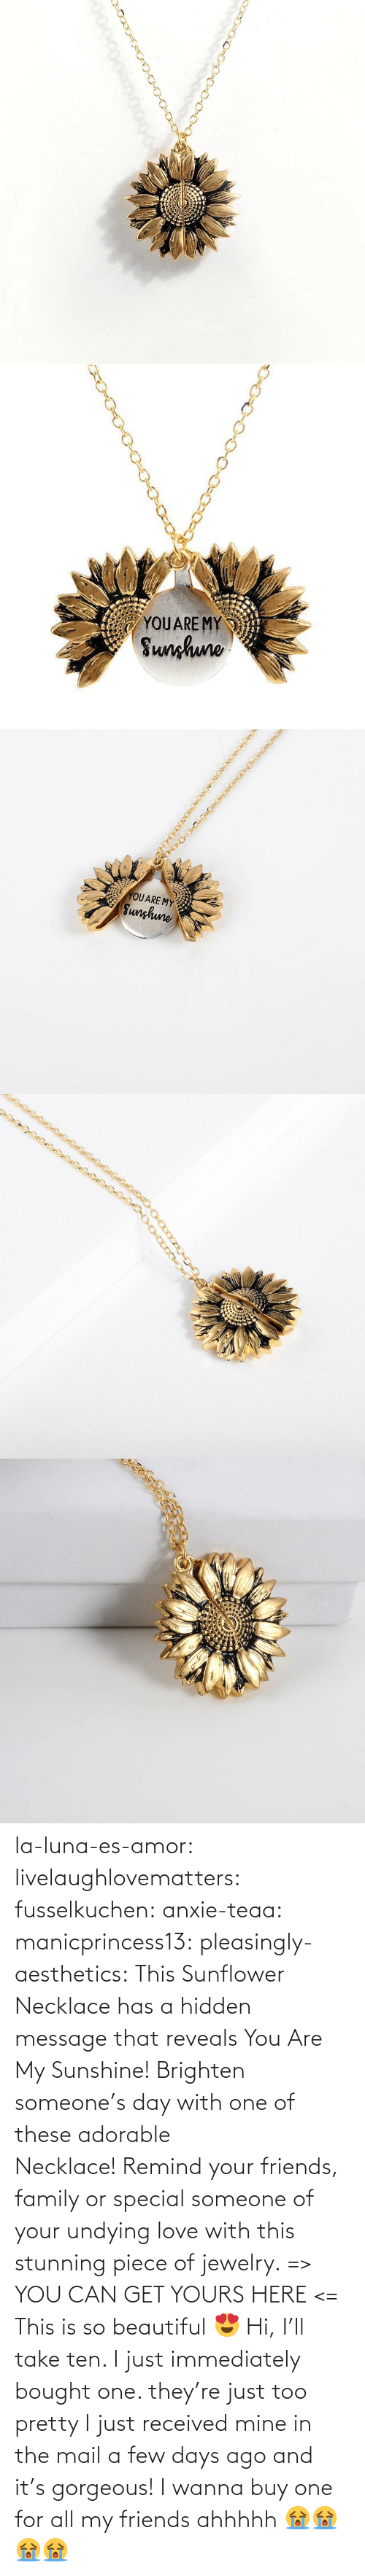 Necklace: YOUARE MY  Sunhuno   YOUARE MY  Sunghune la-luna-es-amor: livelaughlovematters:  fusselkuchen:  anxie-teaa:   manicprincess13:   pleasingly-aesthetics:  This Sunflower Necklace has a hidden message that reveals You Are My Sunshine! Brighten someone's day with one of these adorable Necklace! Remind your friends, family or special someone of your undying love with this stunning piece of jewelry. => YOU CAN GET YOURS HERE <=   This is so beautiful 😍    Hi, I'll take ten.    I just immediately bought one. they're just too pretty   I just received mine in the mail a few days ago and it's gorgeous!   I wanna buy one for all my friends ahhhhh 😭😭😭😭